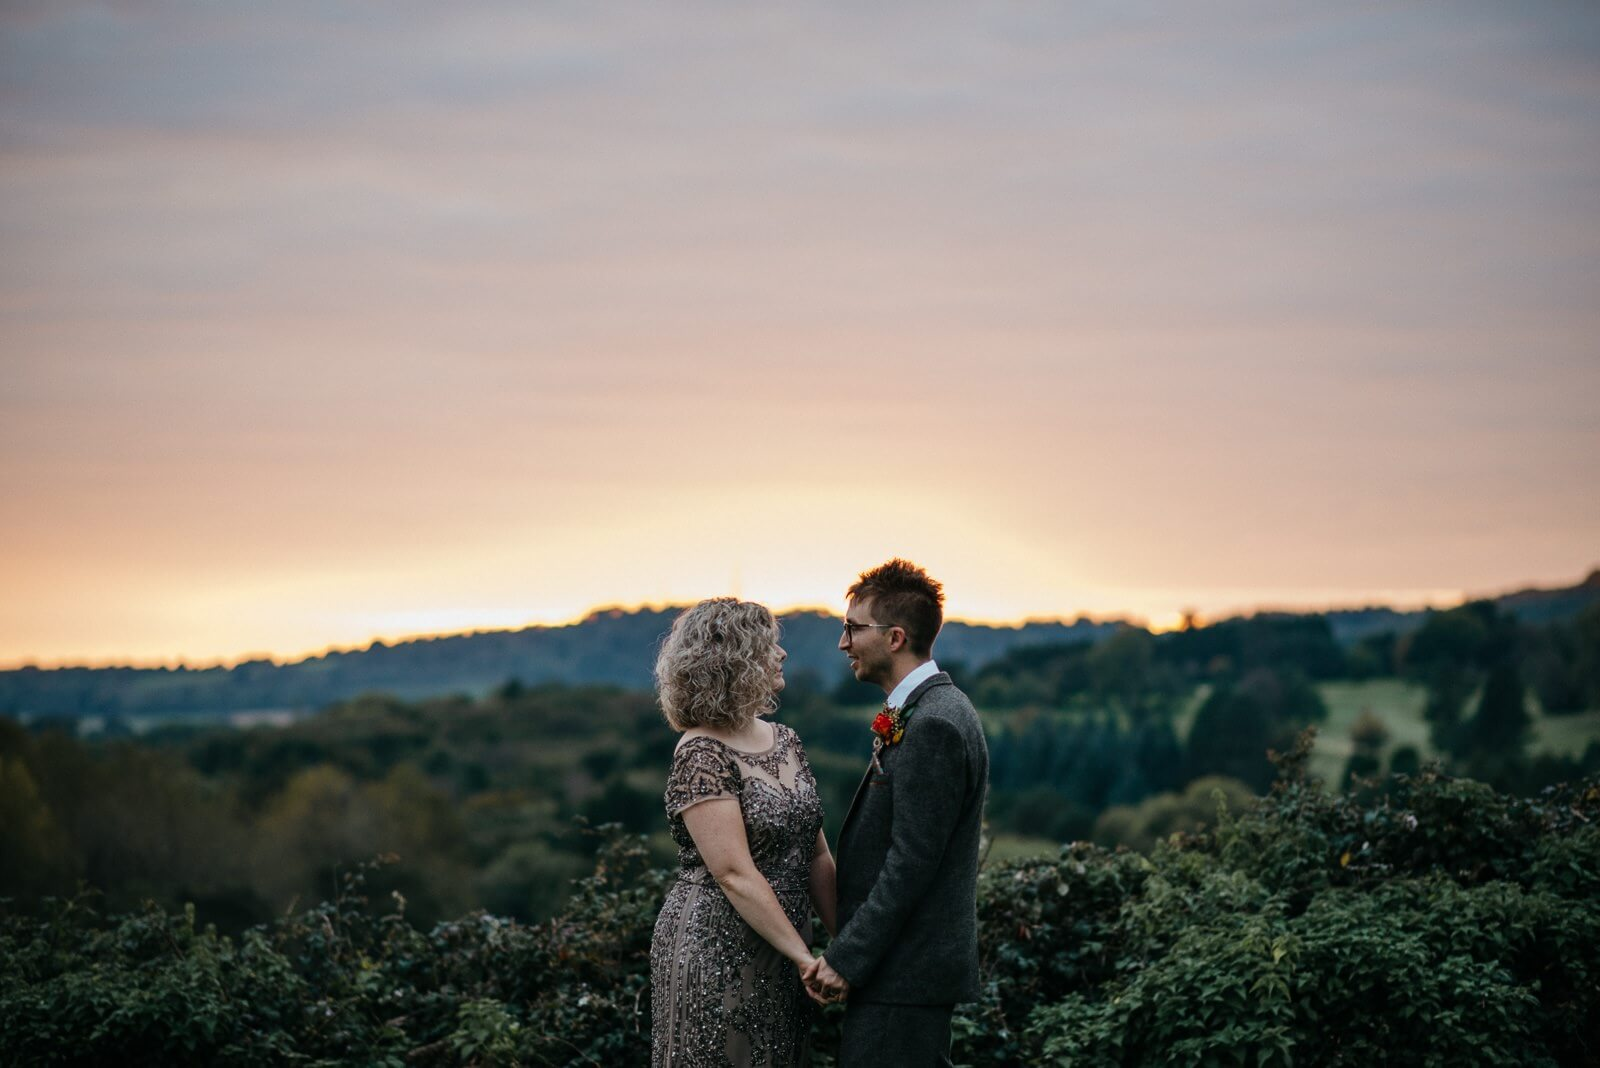 Cardiff Bride and Groom portrait infront of vast green landscape and autumn red sky sunset at golden hour